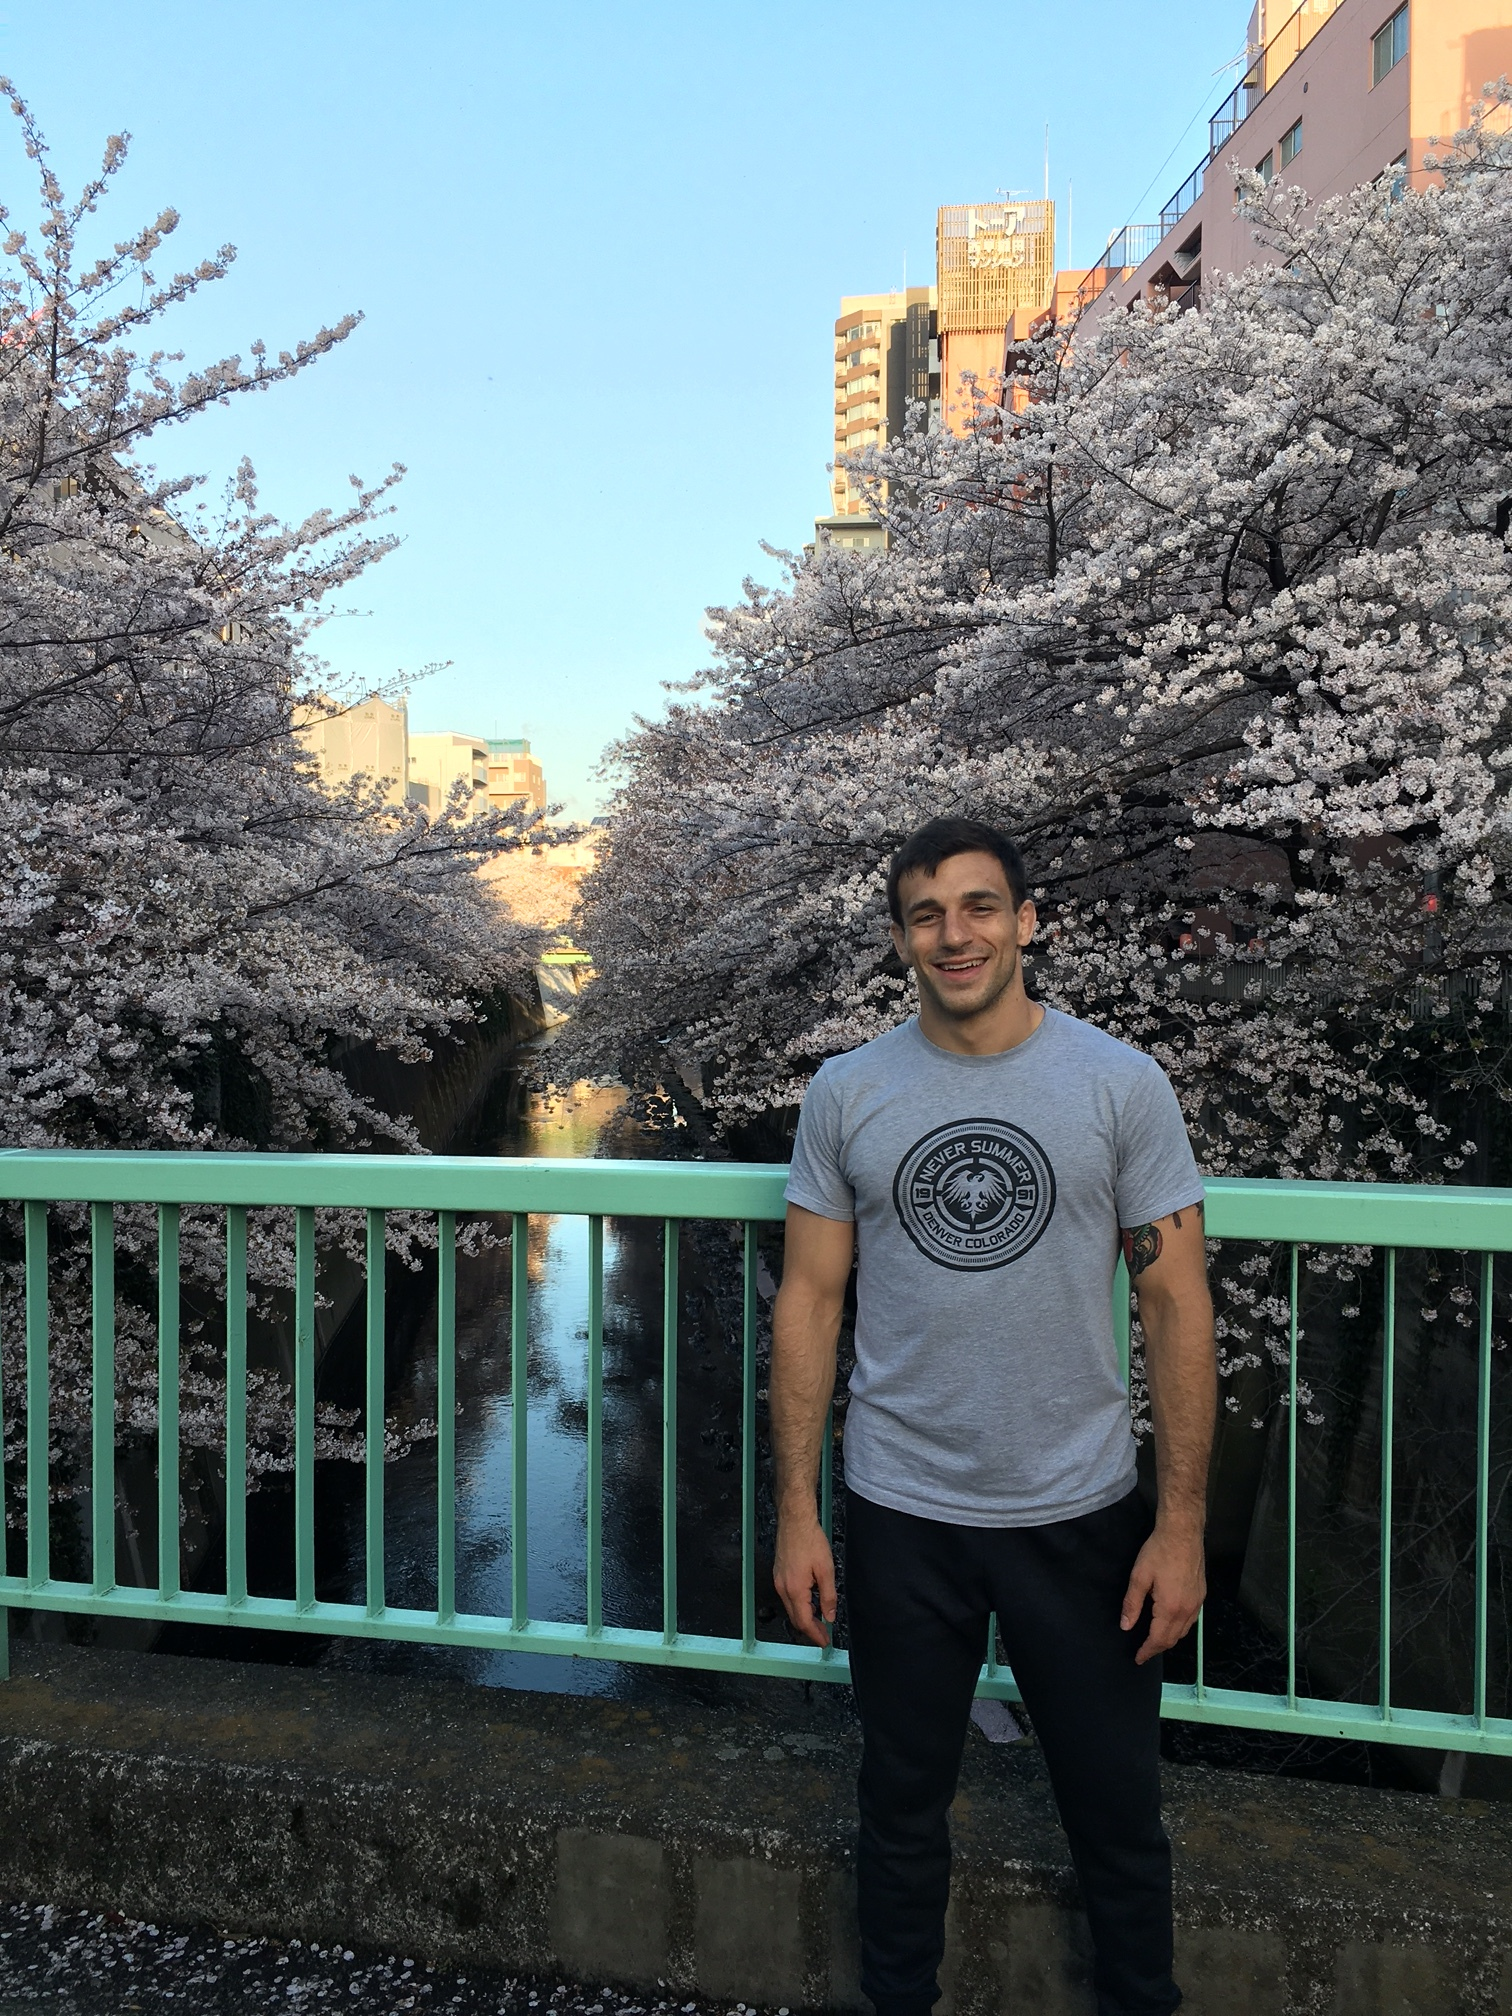 Shameless shot of me by the river near my university, enjoying one of the last days of the  hanami season. Sometimes the cherry blossoms are vibrant pink, and sometimes they have more of a white hue. Either way, they're beautiful and photographs can't do them true justice.